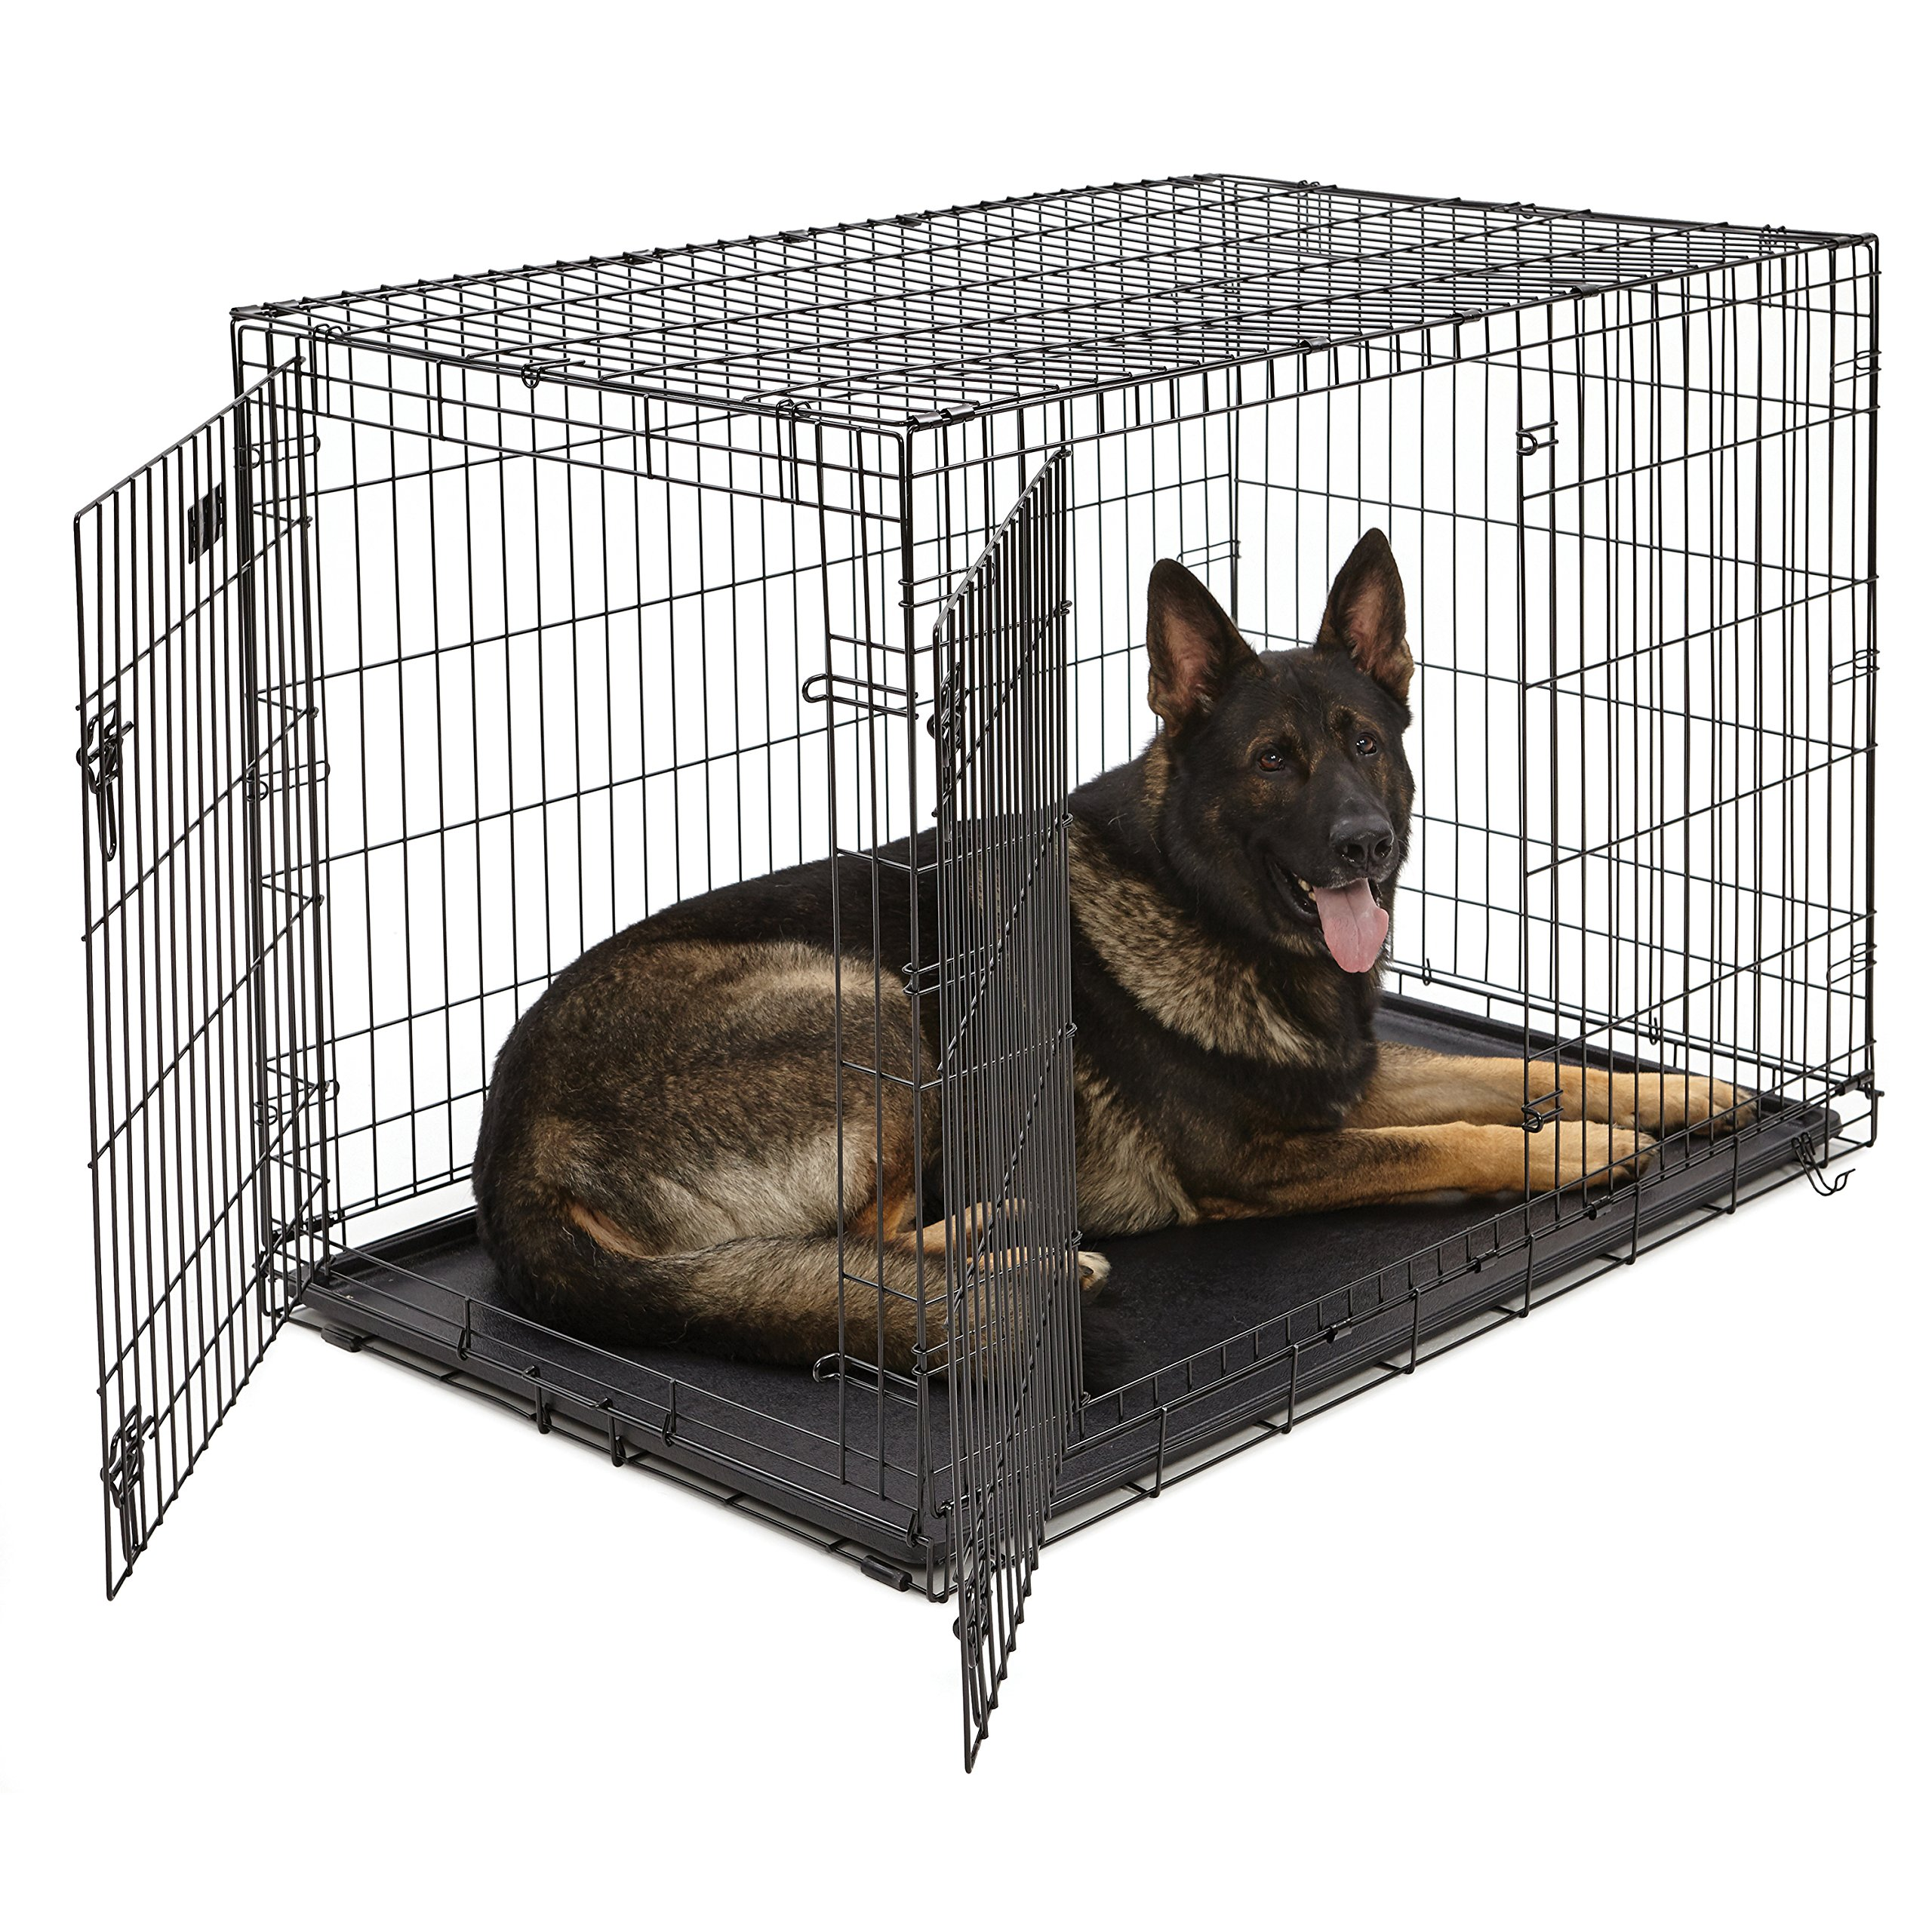 XL Dog Crate | MidWest iCrate Double Door Folding Metal Dog Crate w/ Divider Panel, Floor Protecting Feet & Leak-Proof Dog Tray | 48L x 30W x 33H Inches, XL Dog Breed, Black by MidWest Homes for Pets